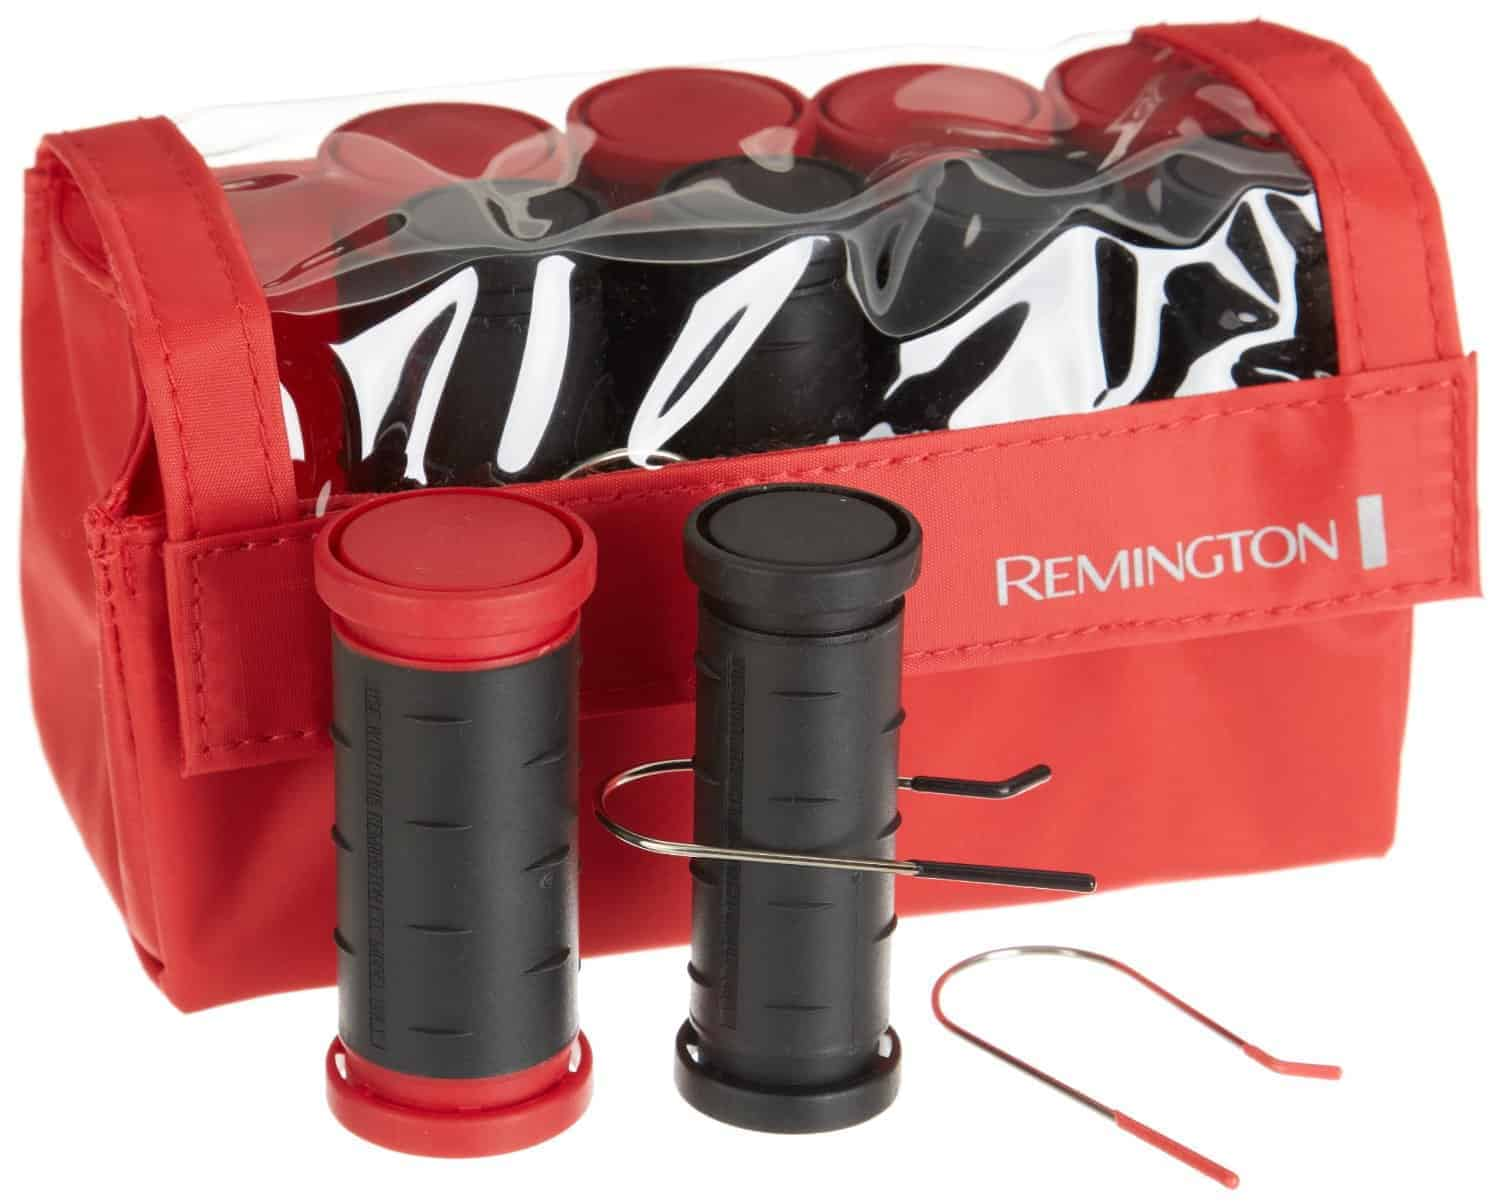 Remington H-1015 - Best Hot Rollers For Short Straight Thick Hair